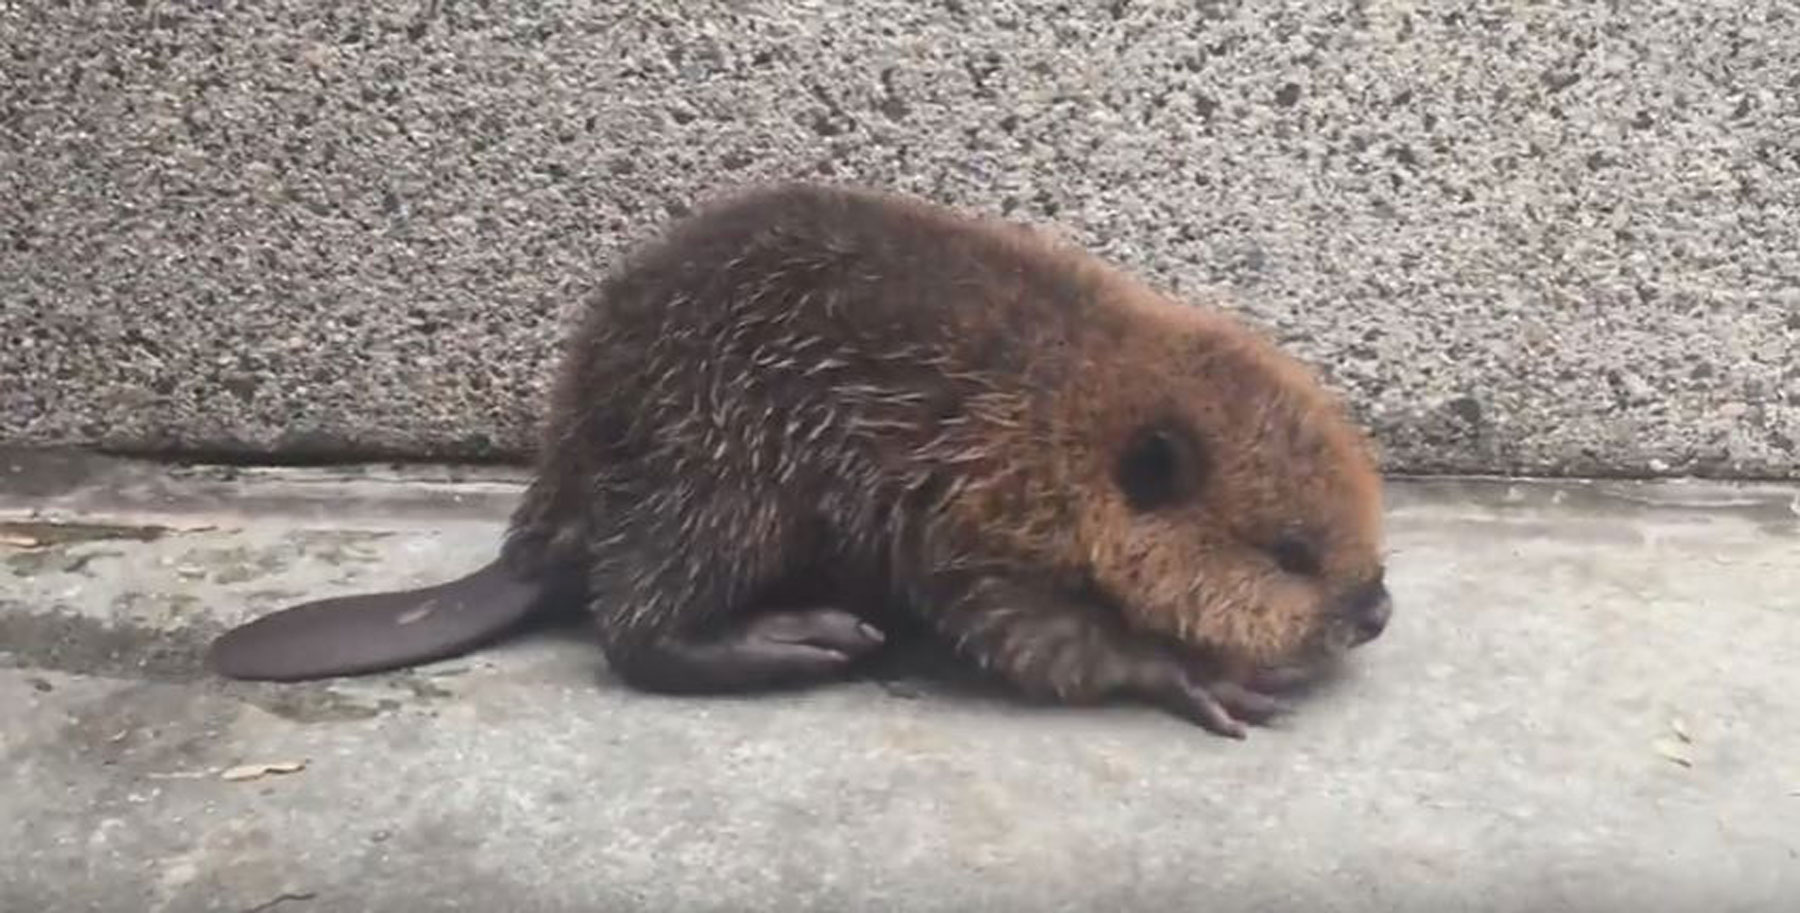 D.C.-area residents help lost baby beaver at Metro station (Video)